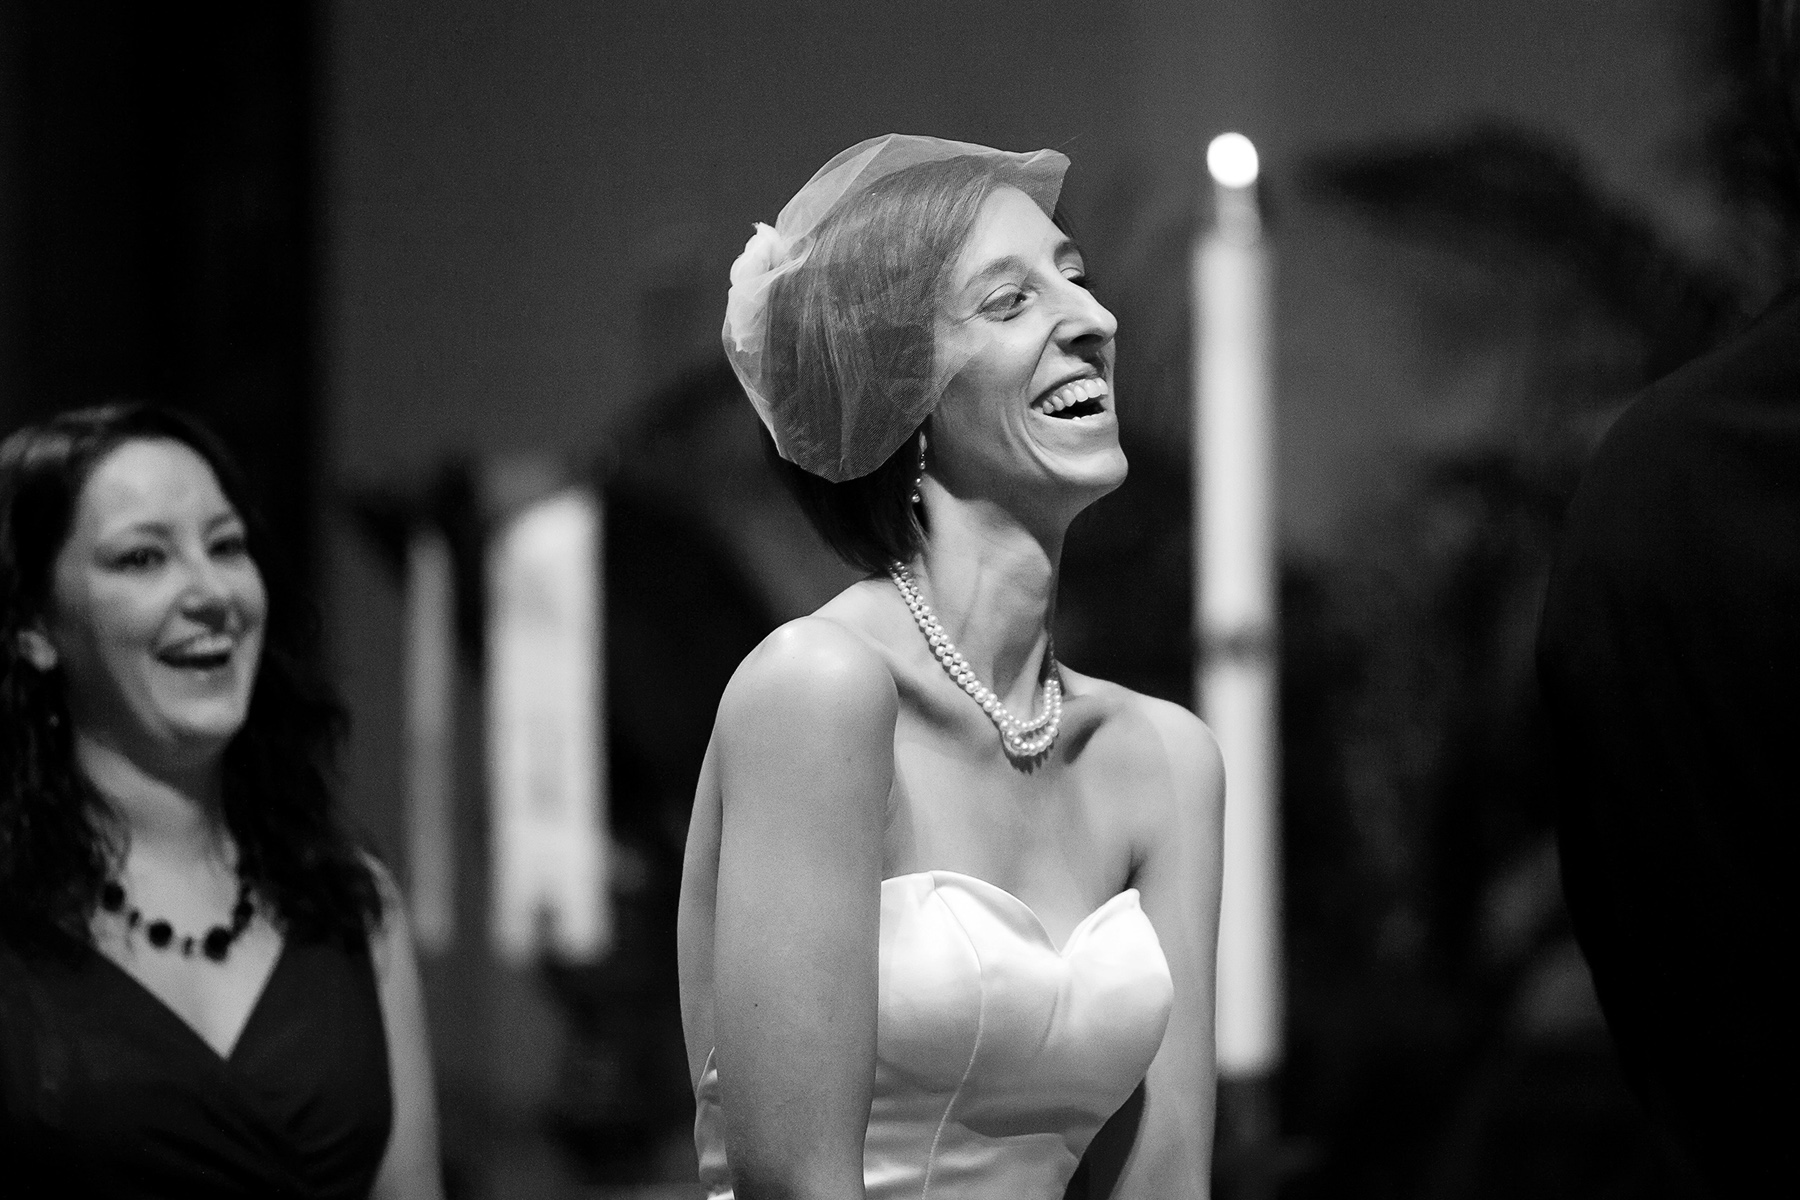 Grace UMC Church Wedding Pics - 458 Ponce de Leon Ave | The bride laughing during the ceremony